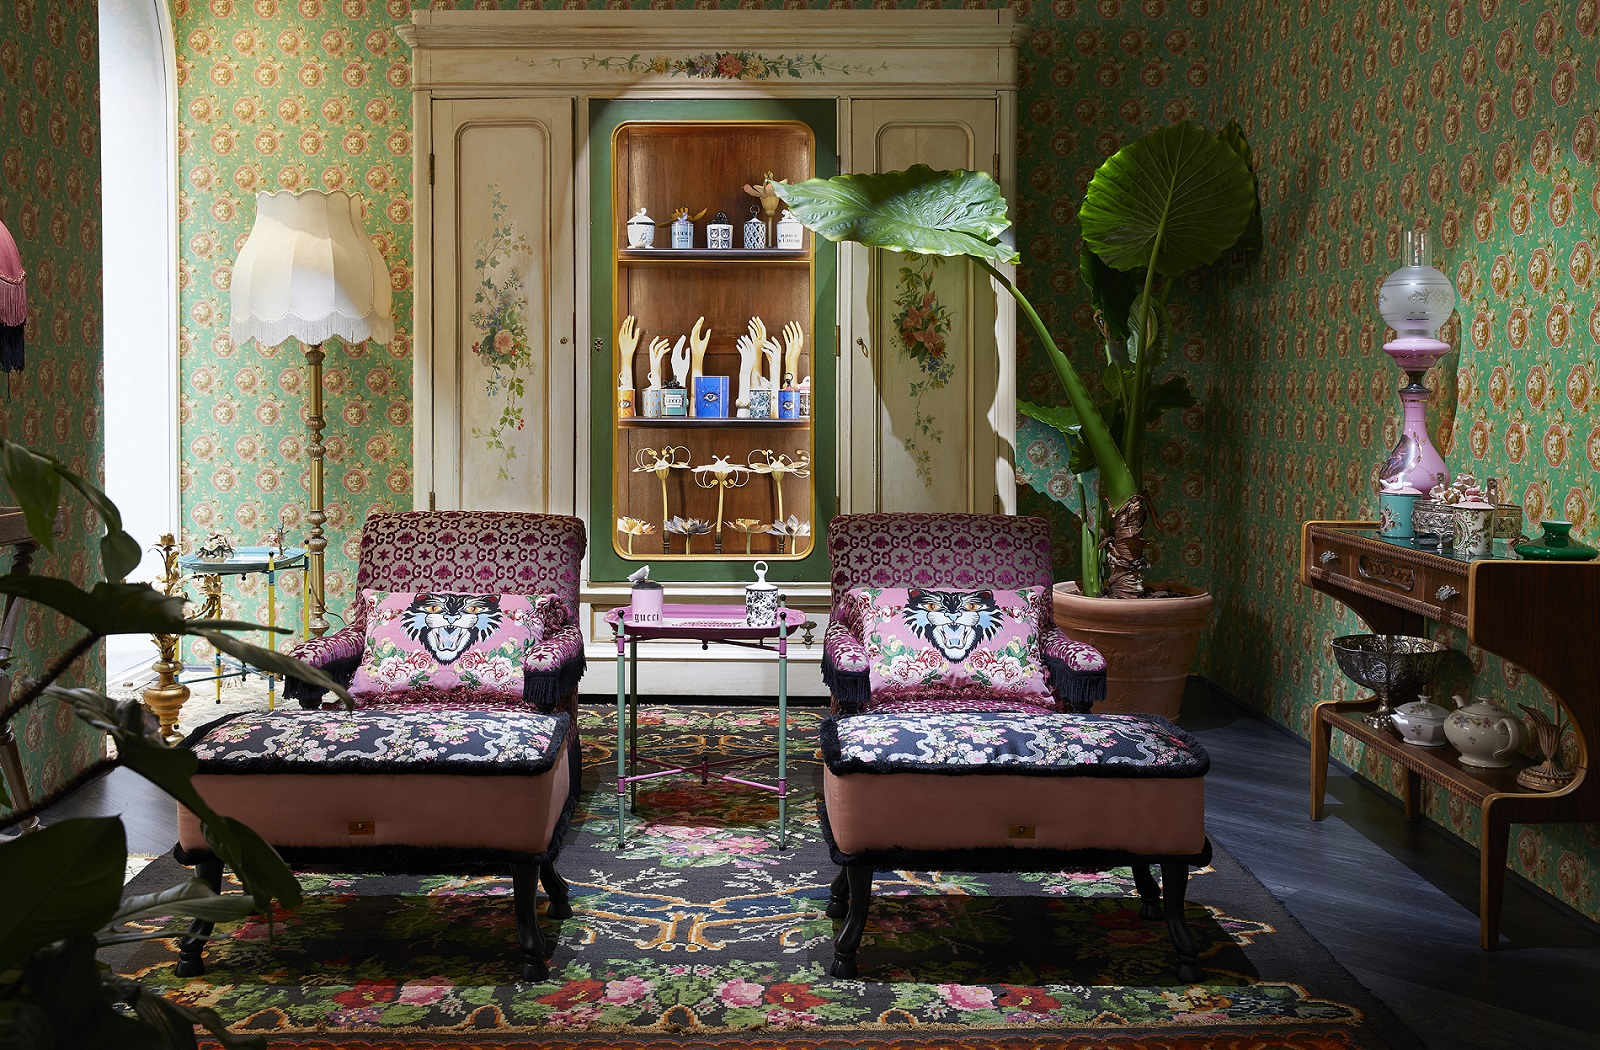 7 luxury fashion labels breaking into the home interiors market